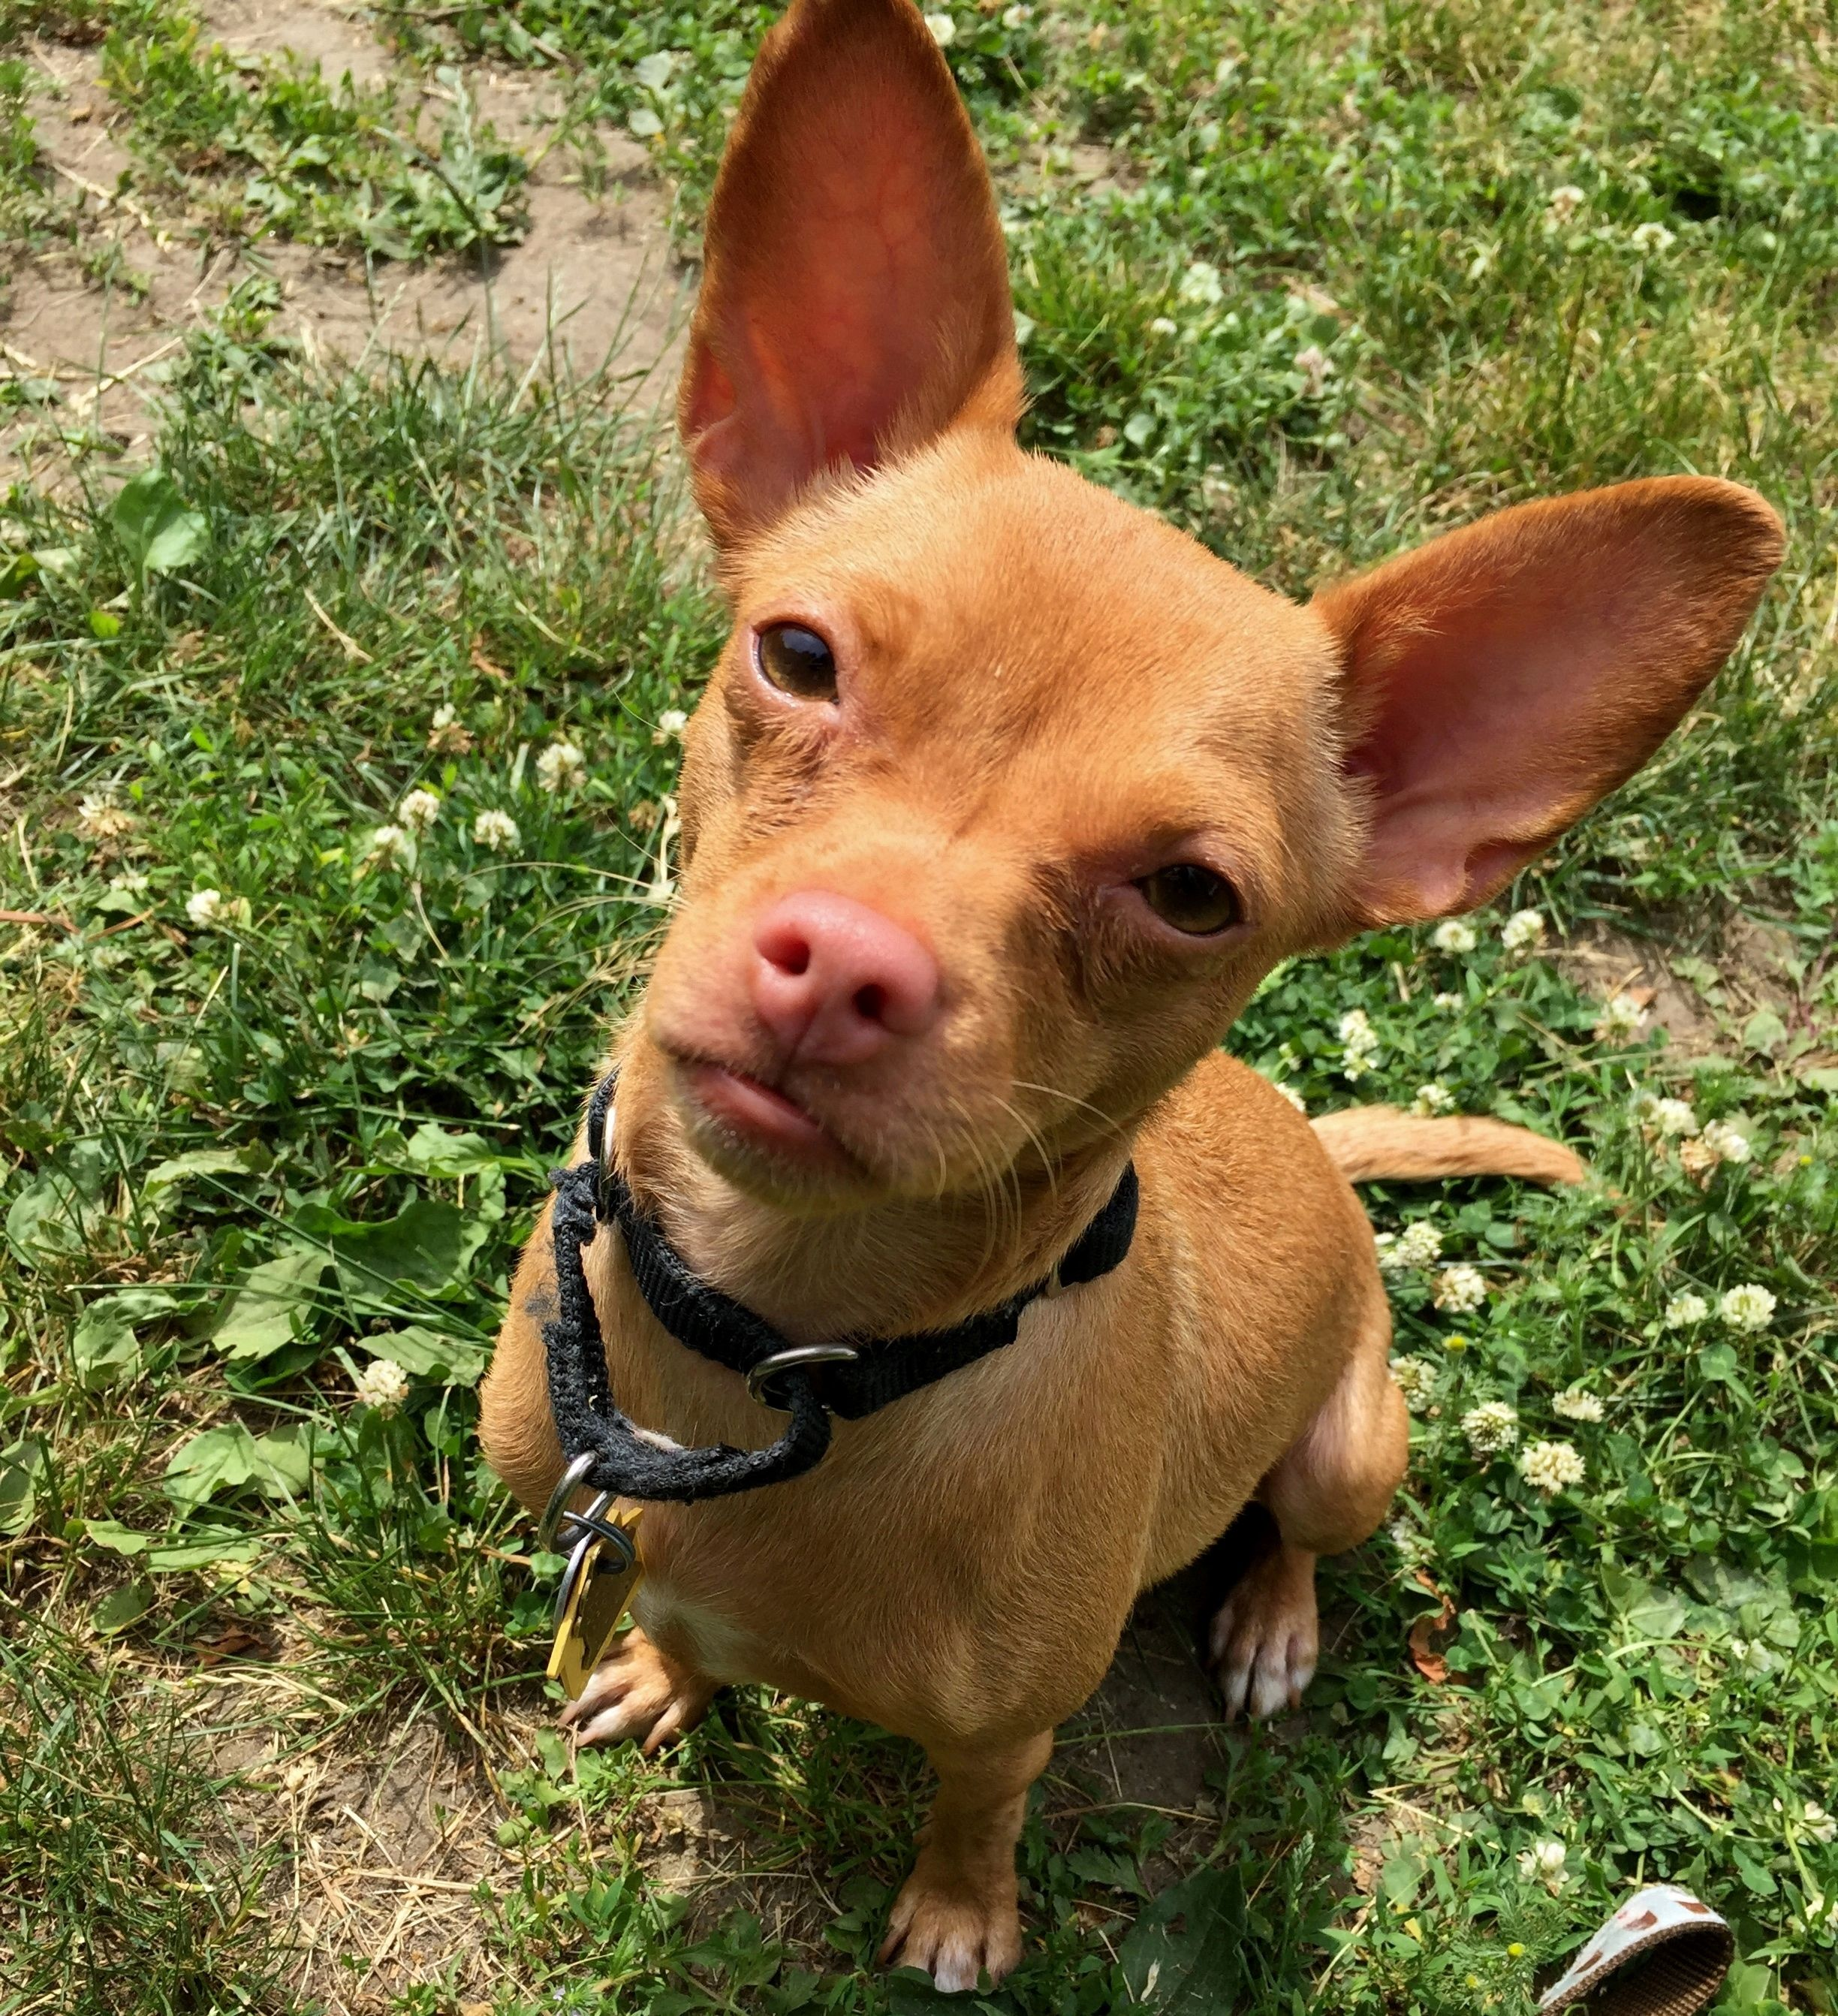 HAZEL is an adoptable chihuahua searching for a forever